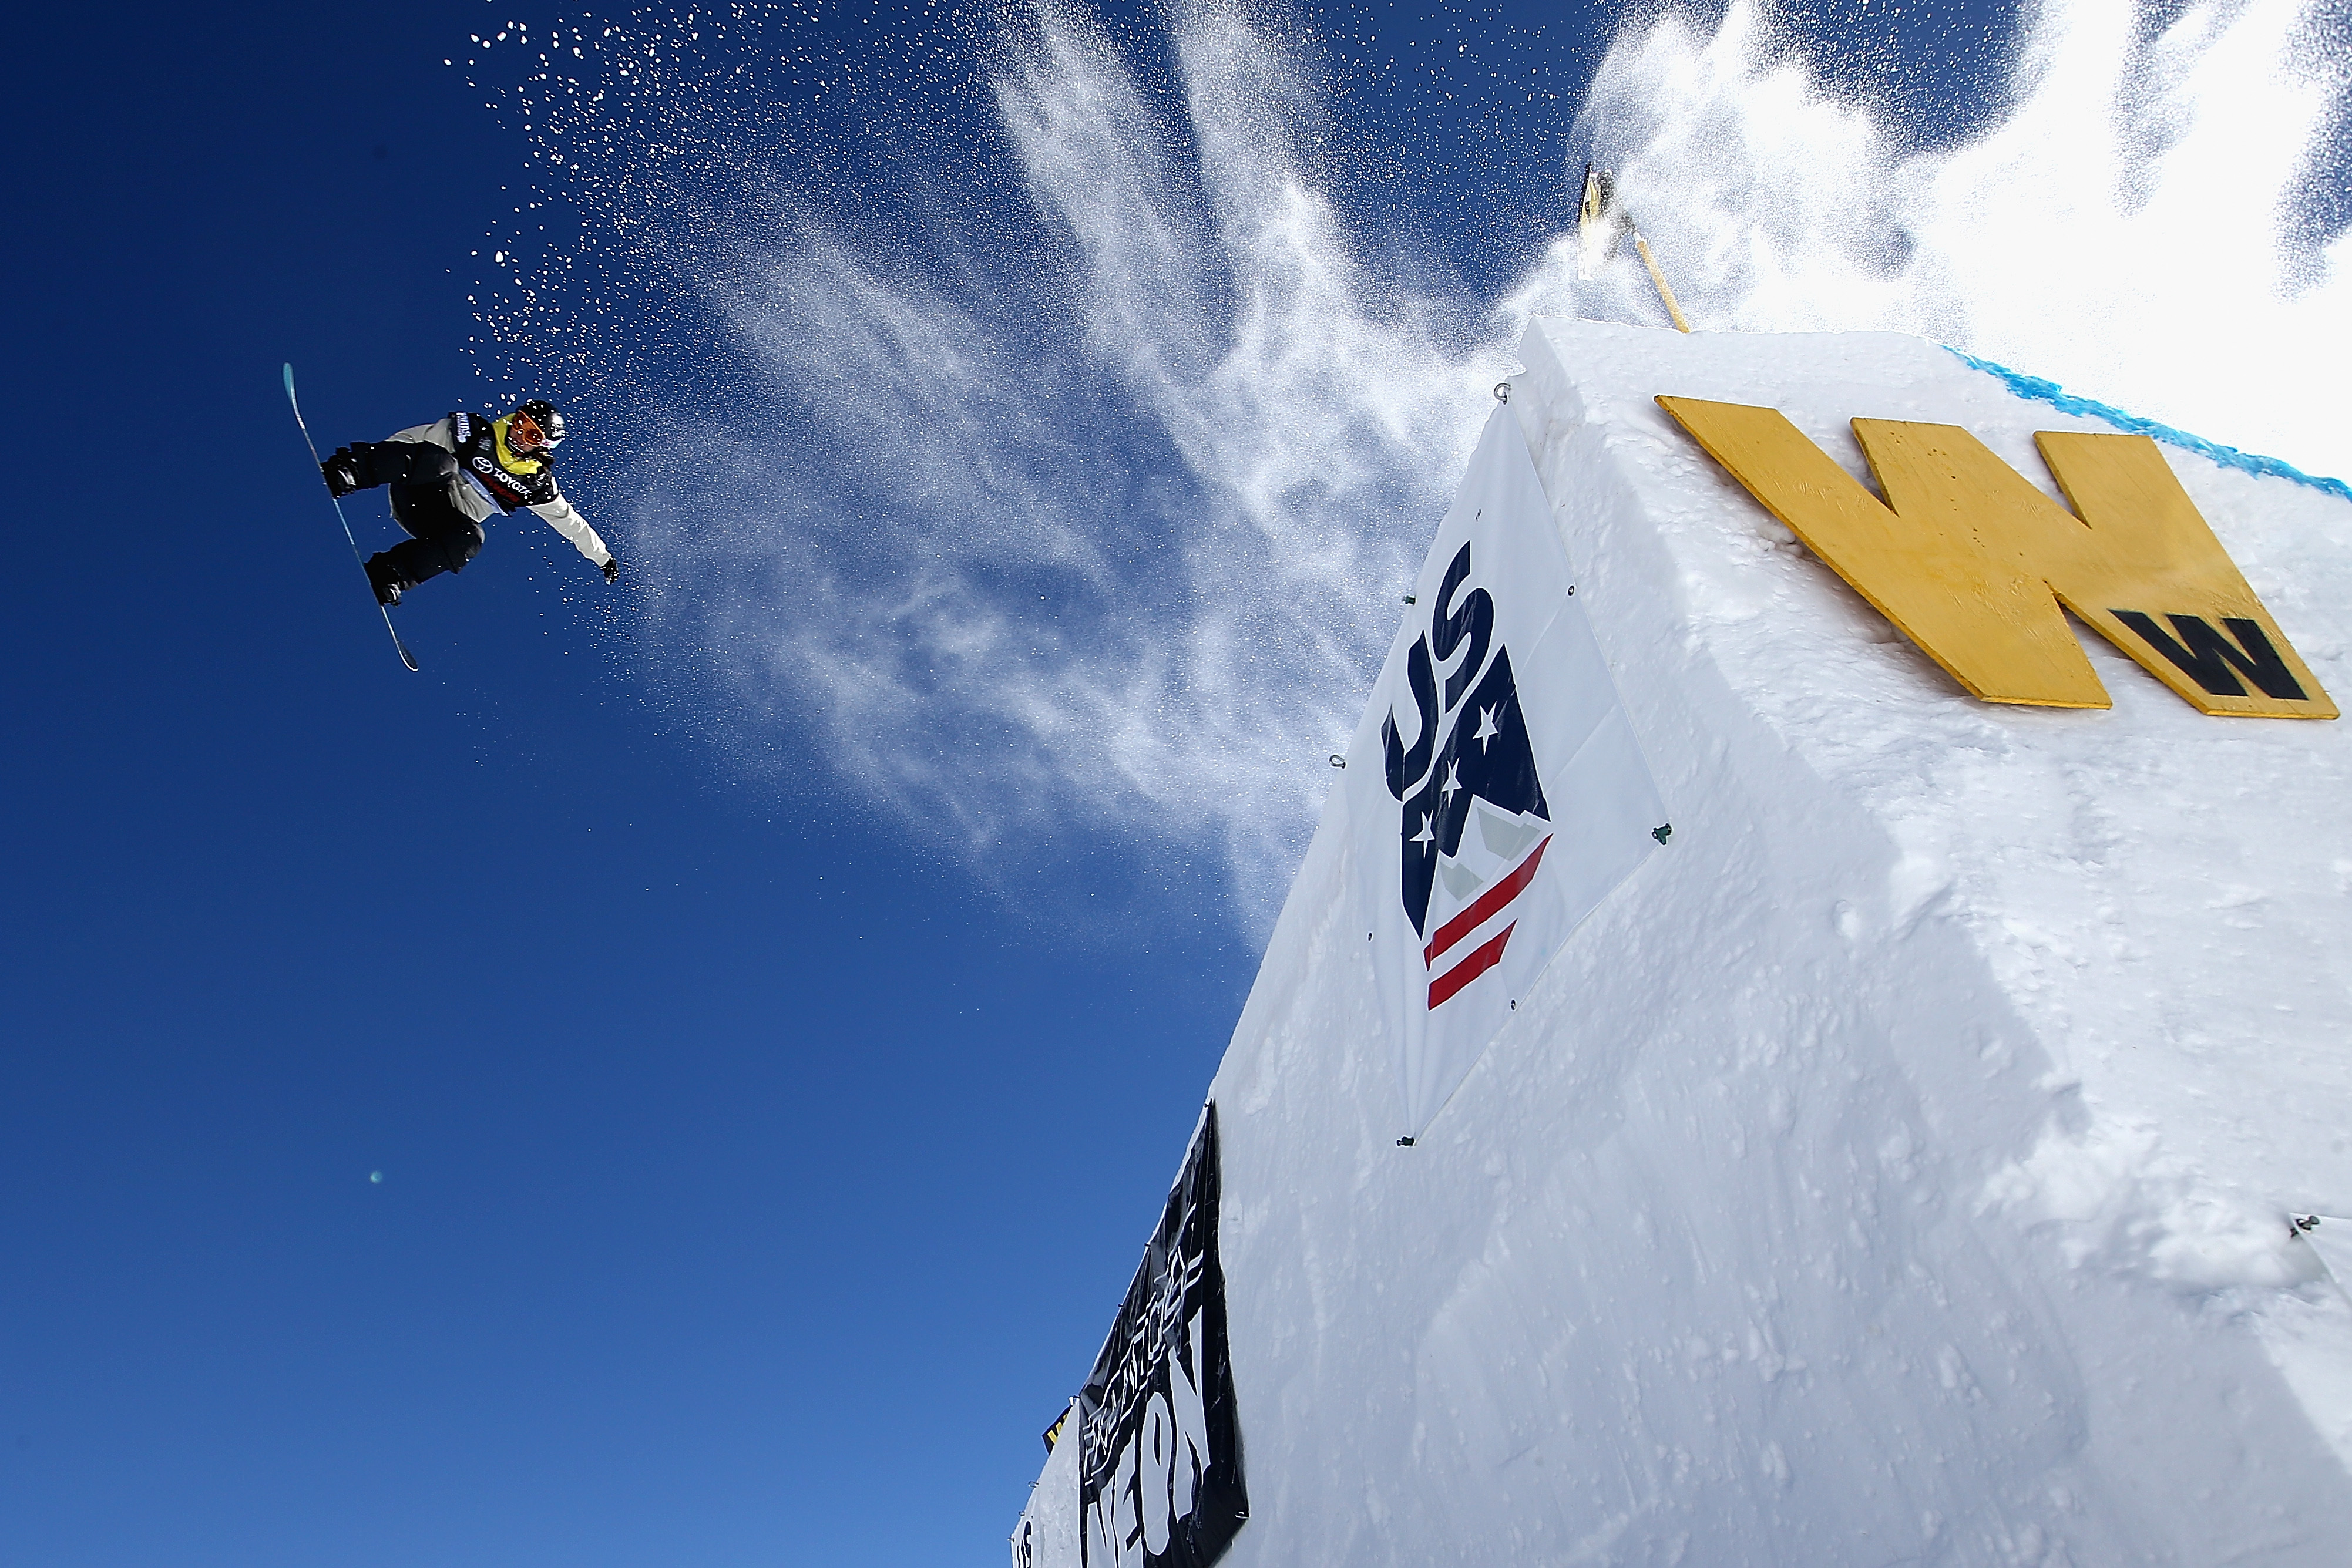 Sina Candrian of Switzerland competes in the final of the FIS Snowboard World Cup 2018 Ladies' Big Air during the Toyota U.S. Grand Prix on December 10, 2017 in Copper Mountain, Colorado. Sean M. Haffey—Getty Images